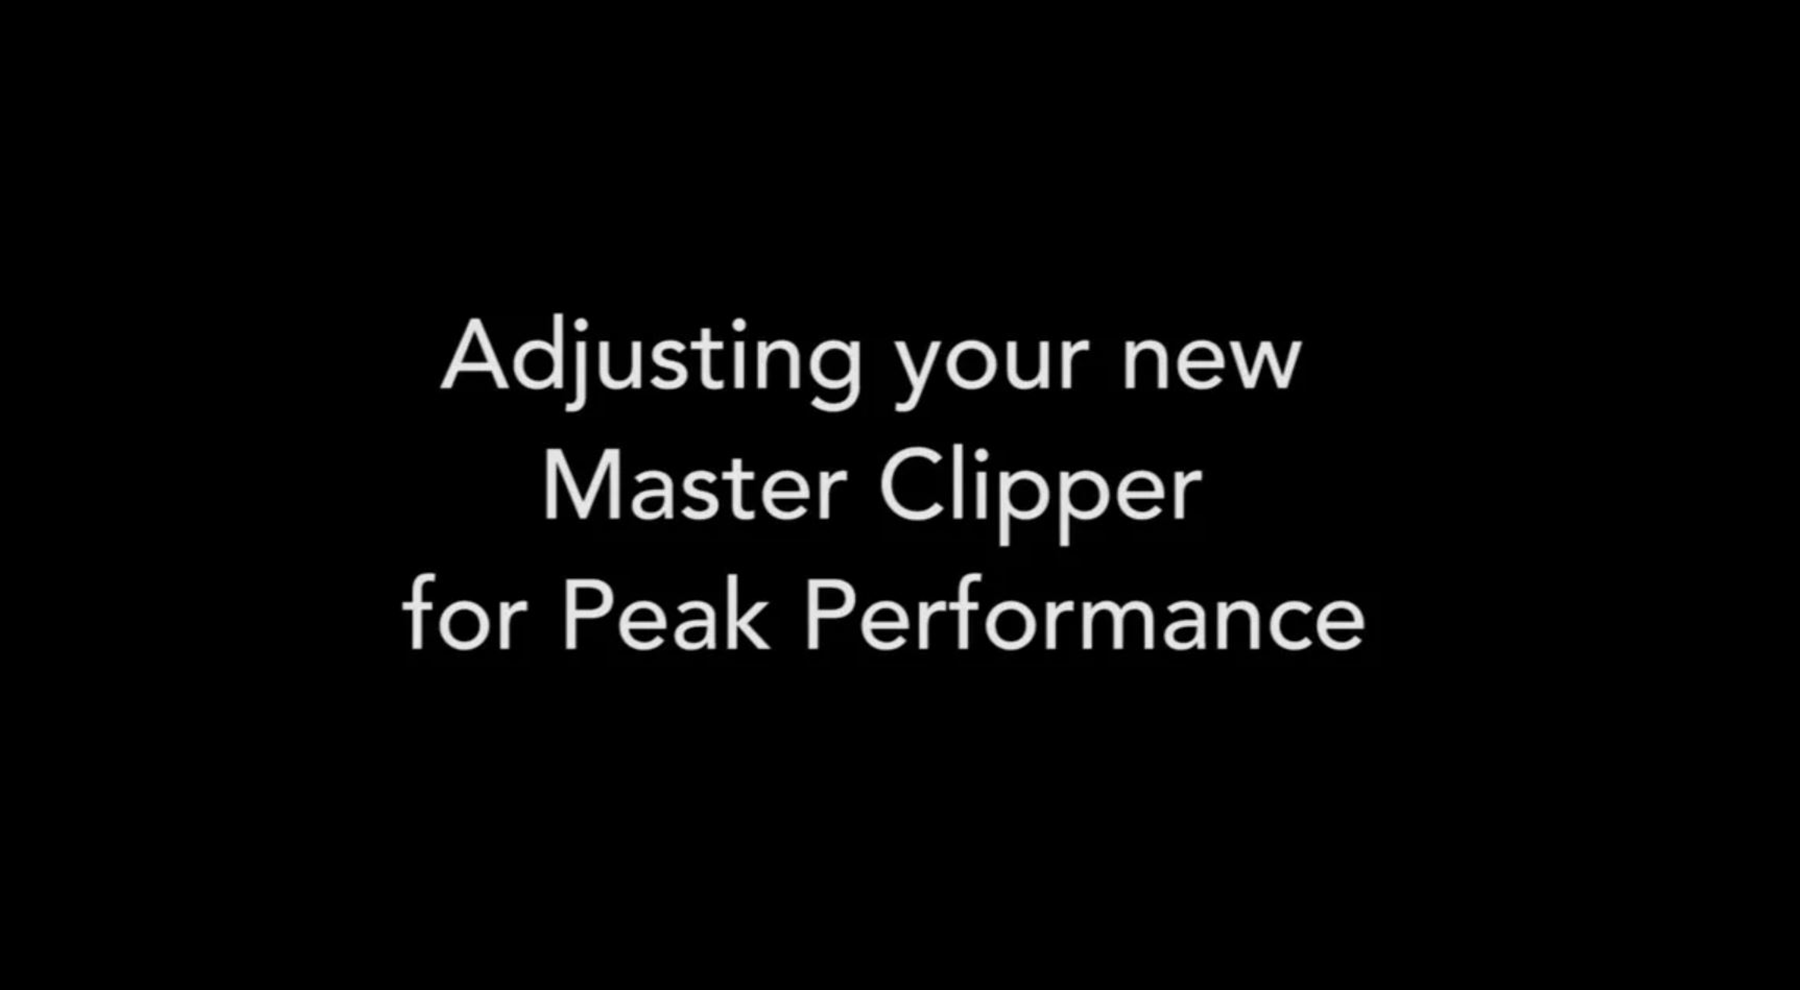 Your New Master® Clipper's Peak Performance